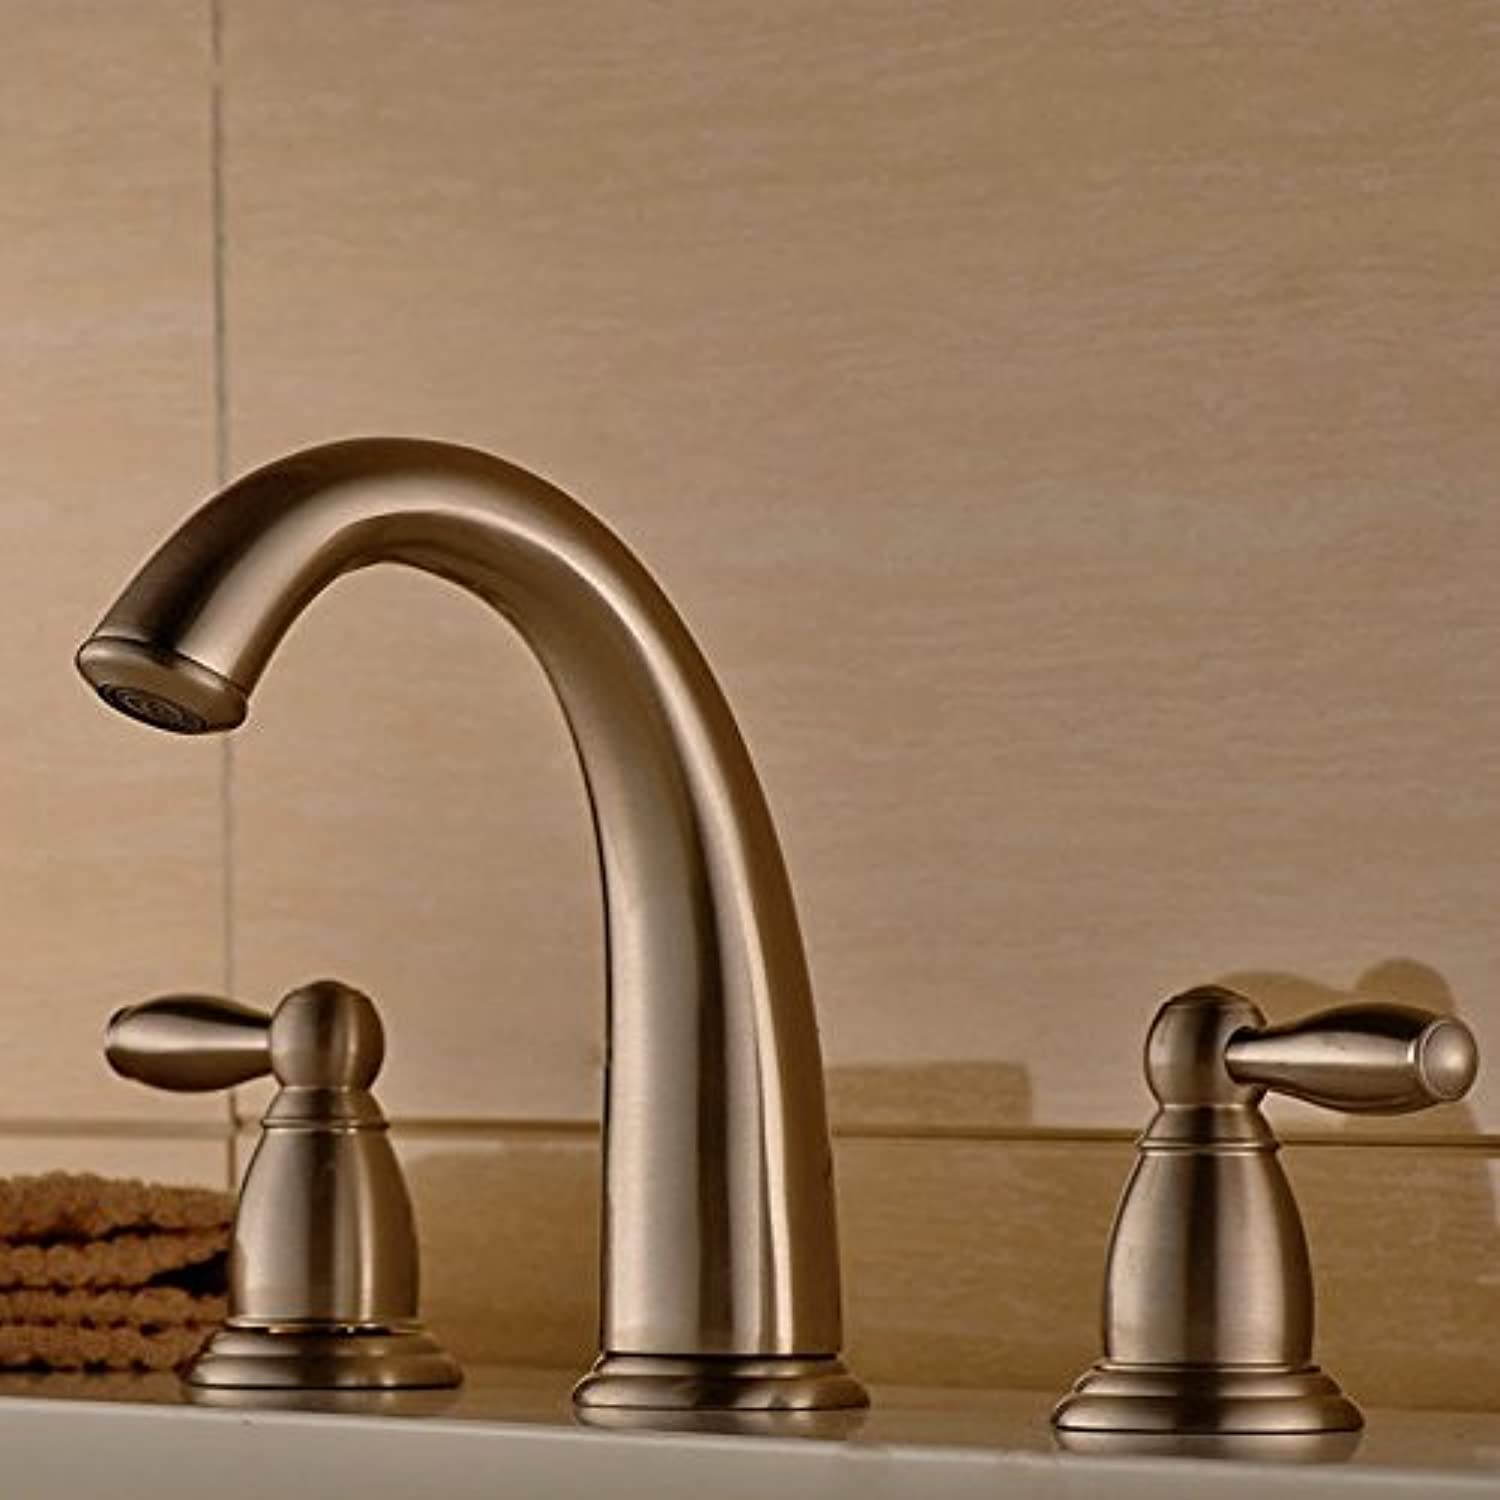 NewBorn Faucet Kitchen Or Bathroom Sink Mixer Tap The Copper gold-Plated Single Handle Single Holepinkgold